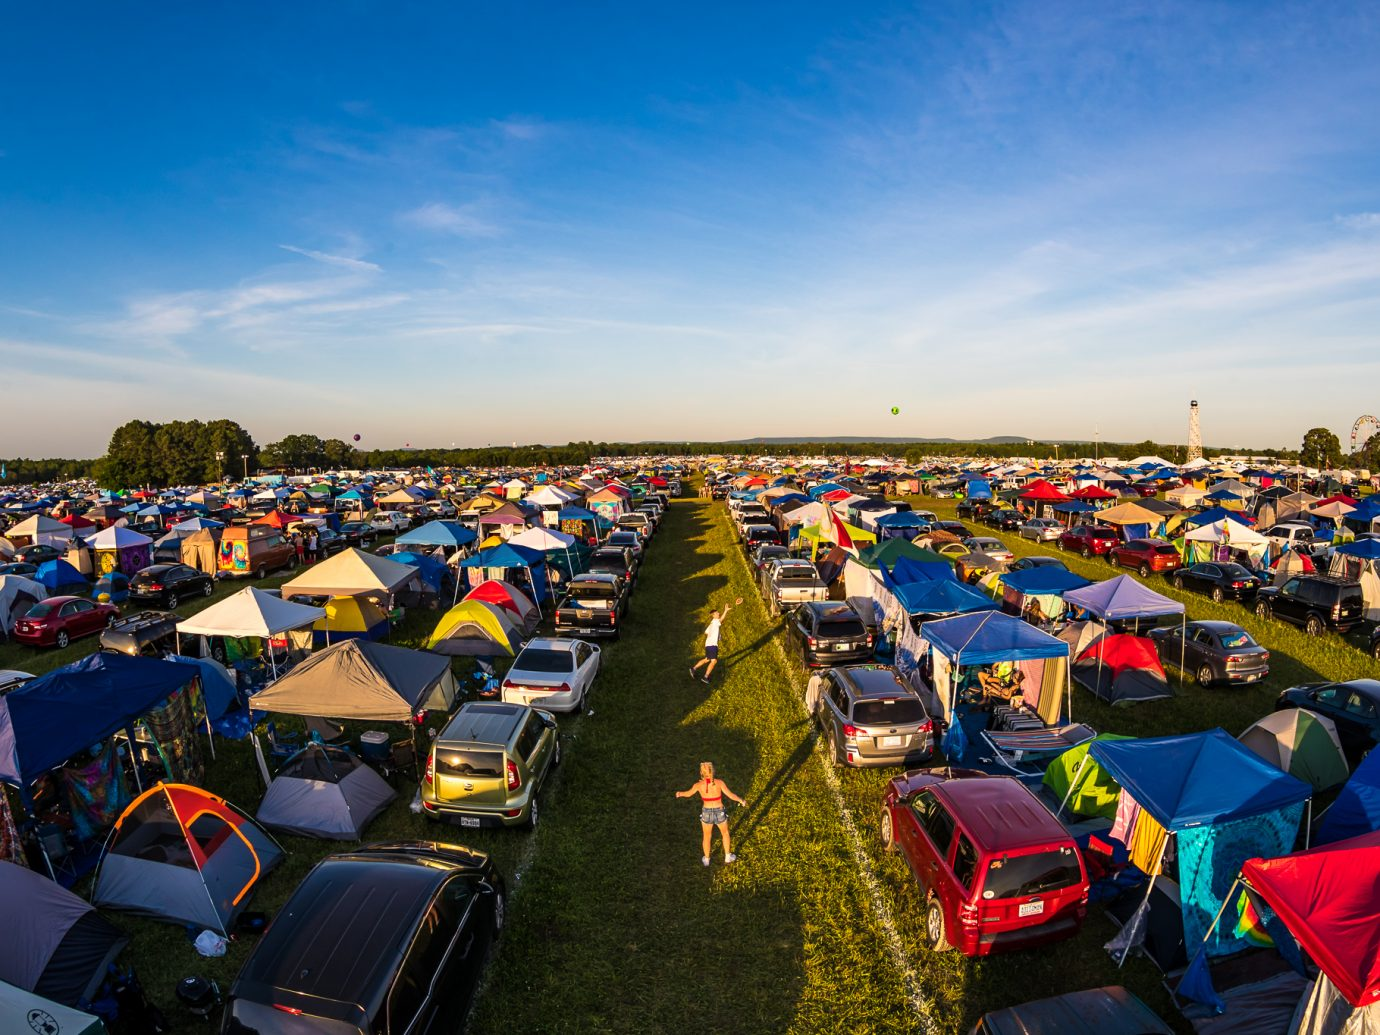 overhead shot of people playing games between a line of cars and tents